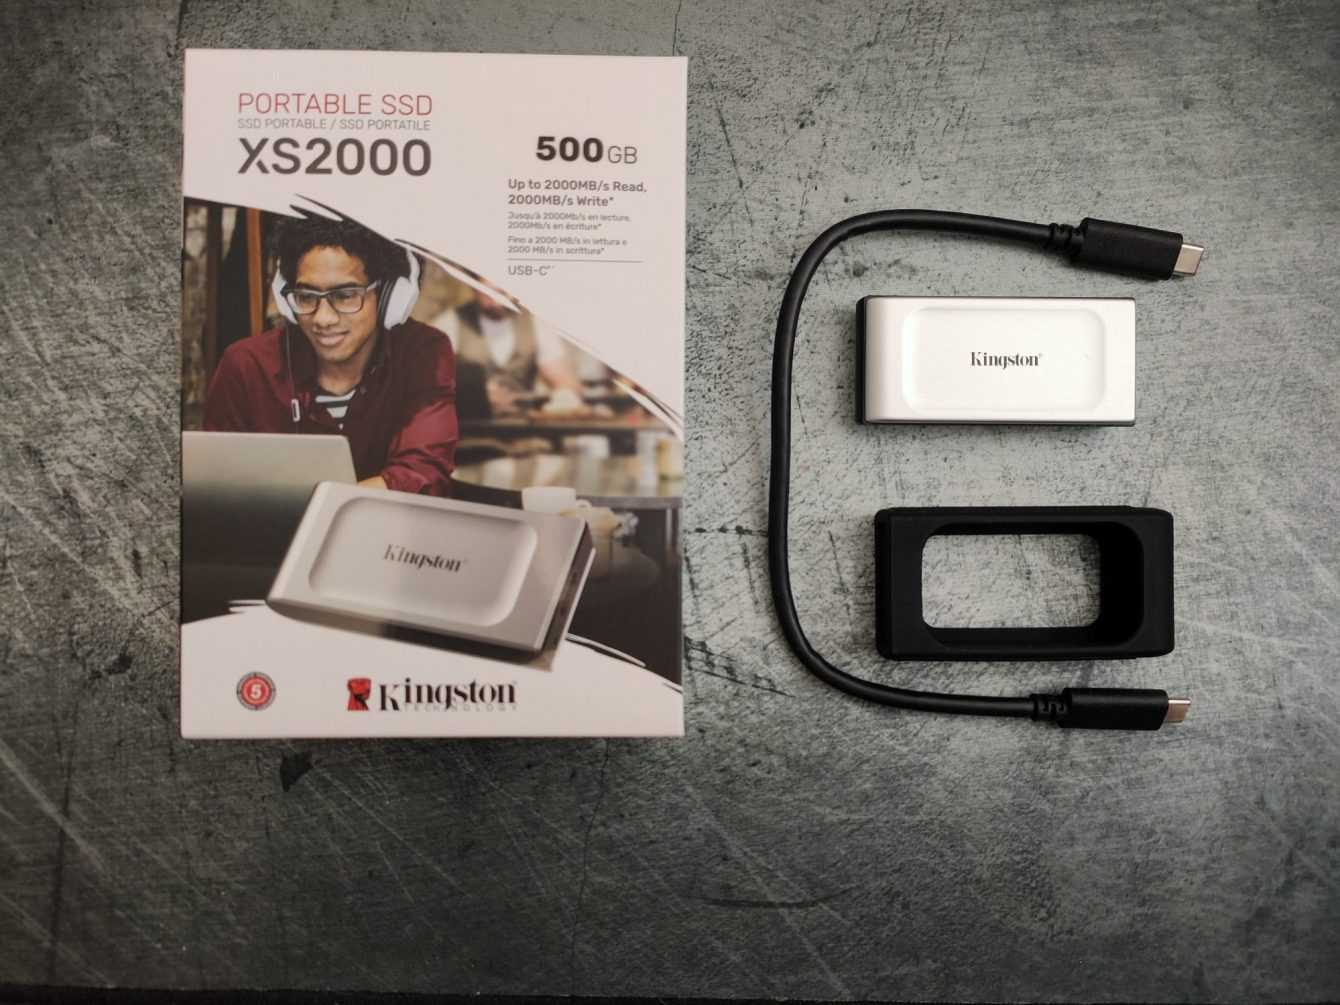 Kingston SSD XS2000 review: portable and fast